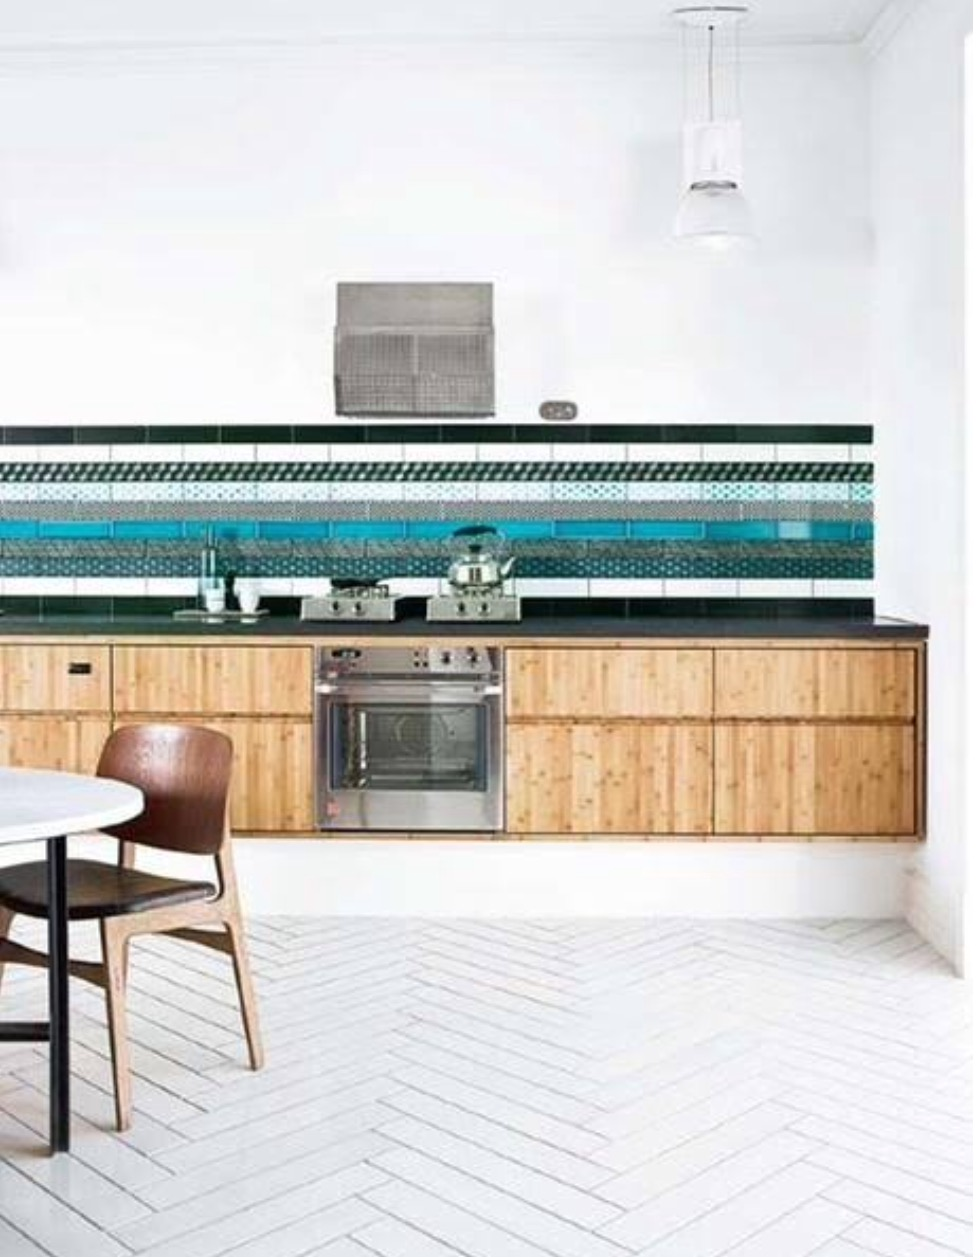 splash back heaven - Only limited by your imagination,use different tiles and textures to create this look